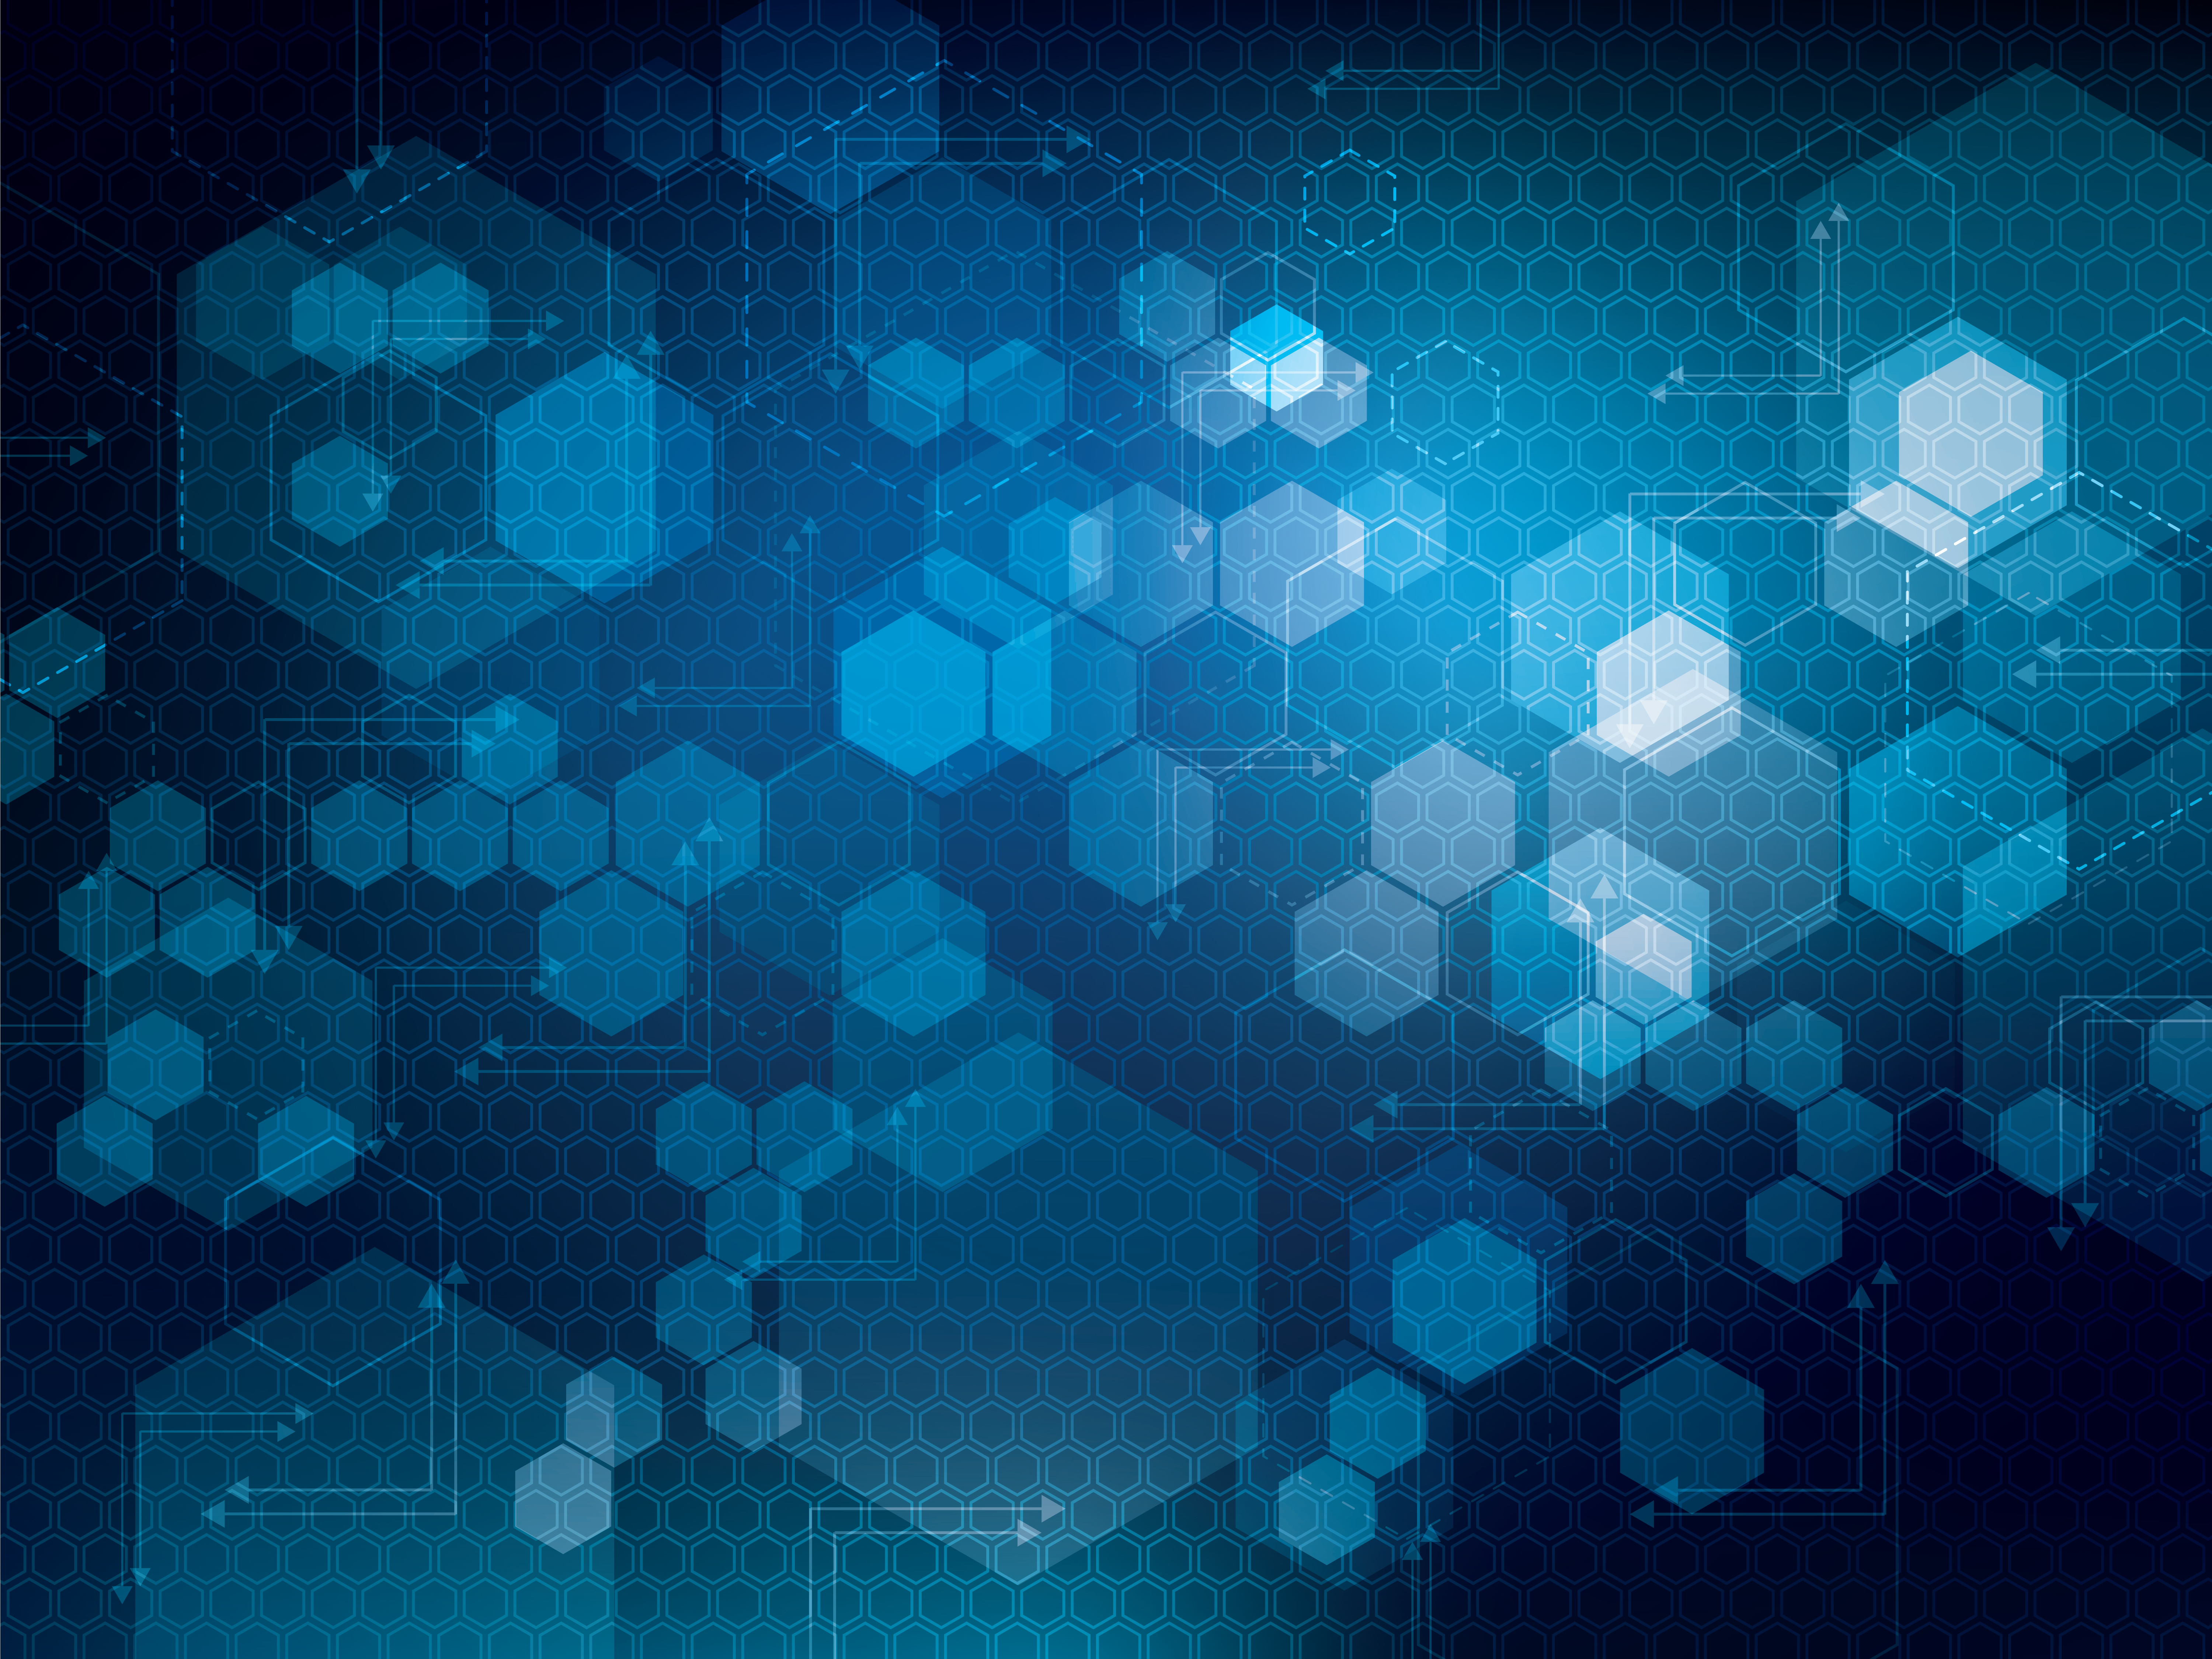 Abstract blue technology background with lines, arrows, hexagons. Concept of futuristic design of technology, science, medicine and chemistry in vector illustration.